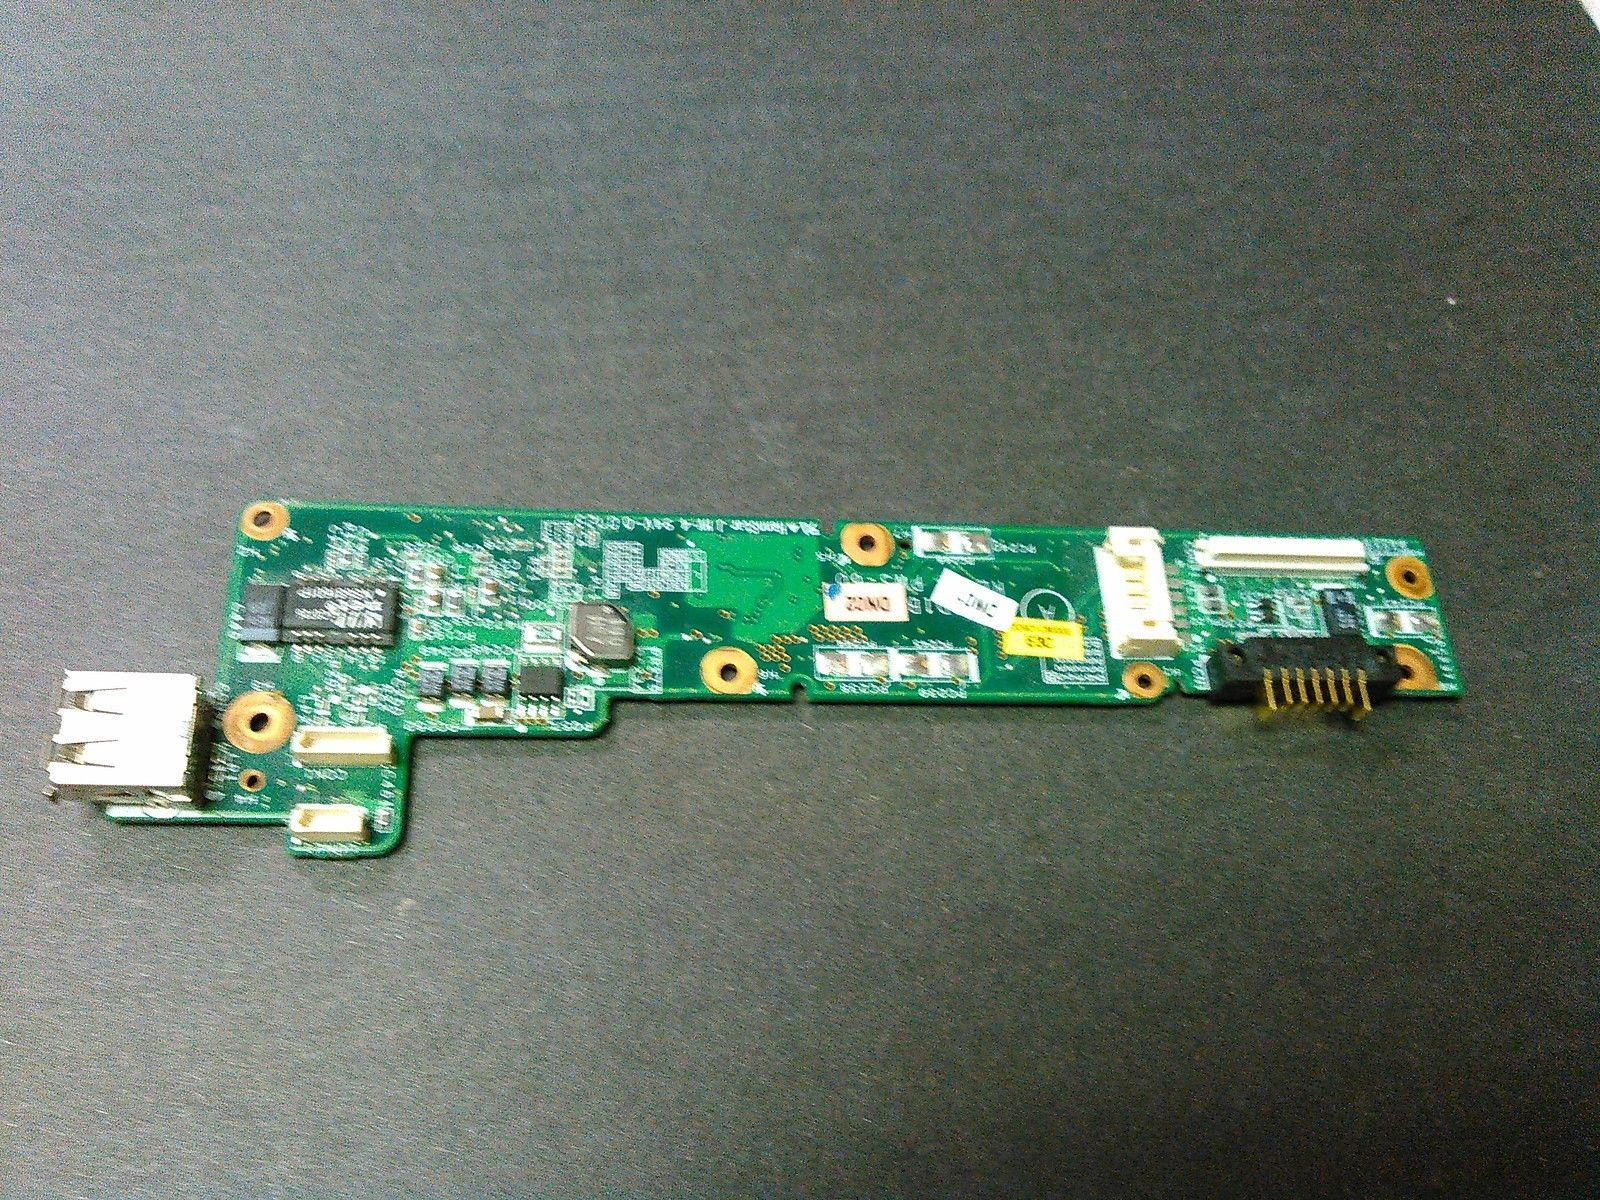 OEM Sony Vaio VGN-CR120E Charger Board With USB - DA0GD1BB8E0